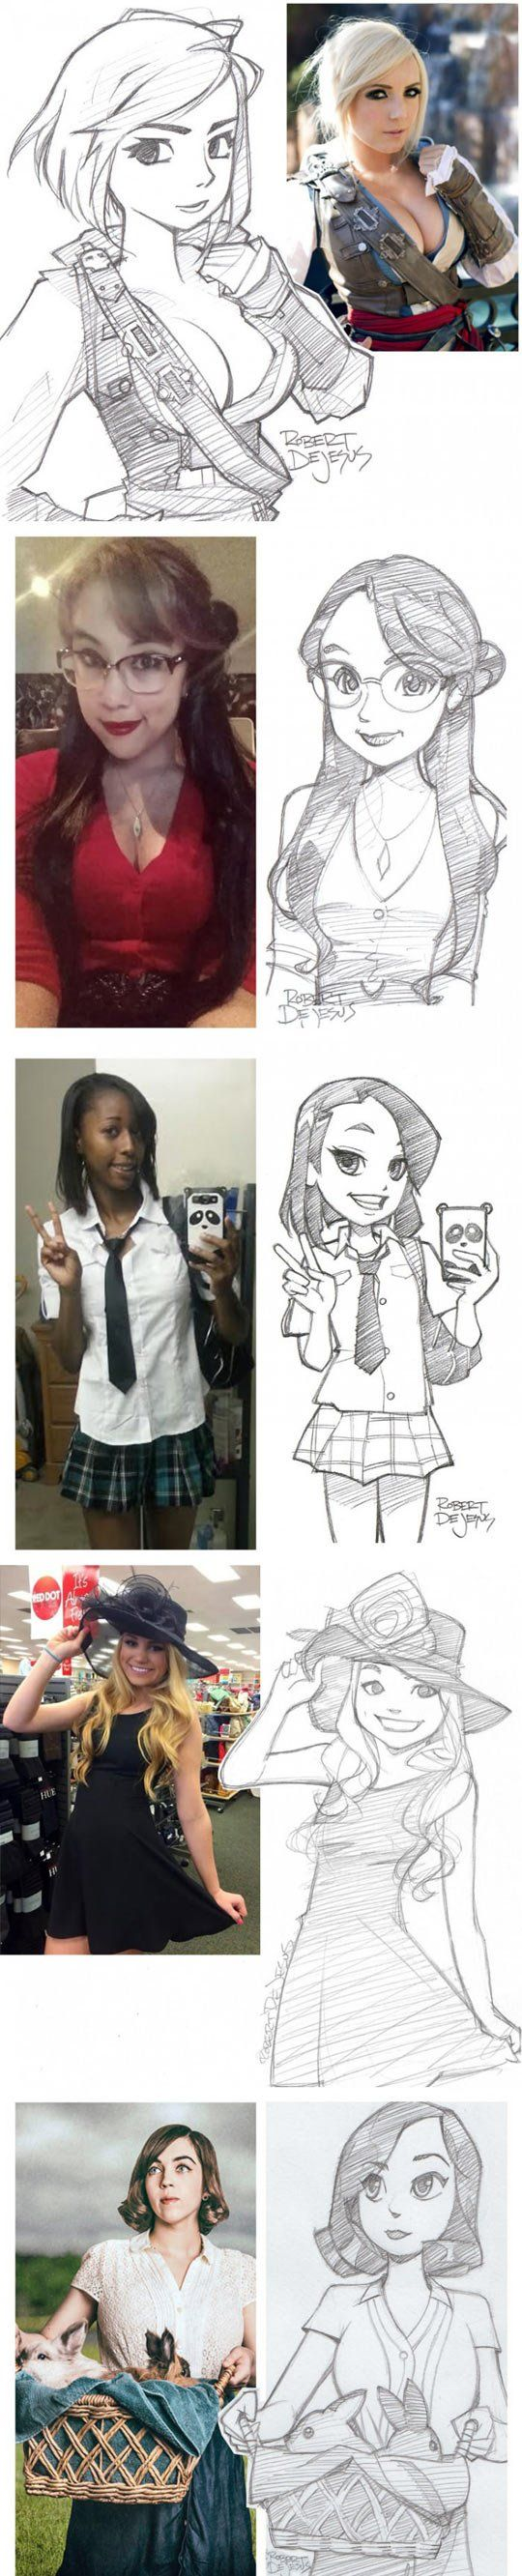 People And Their Cartoon Versions (1 of 2)